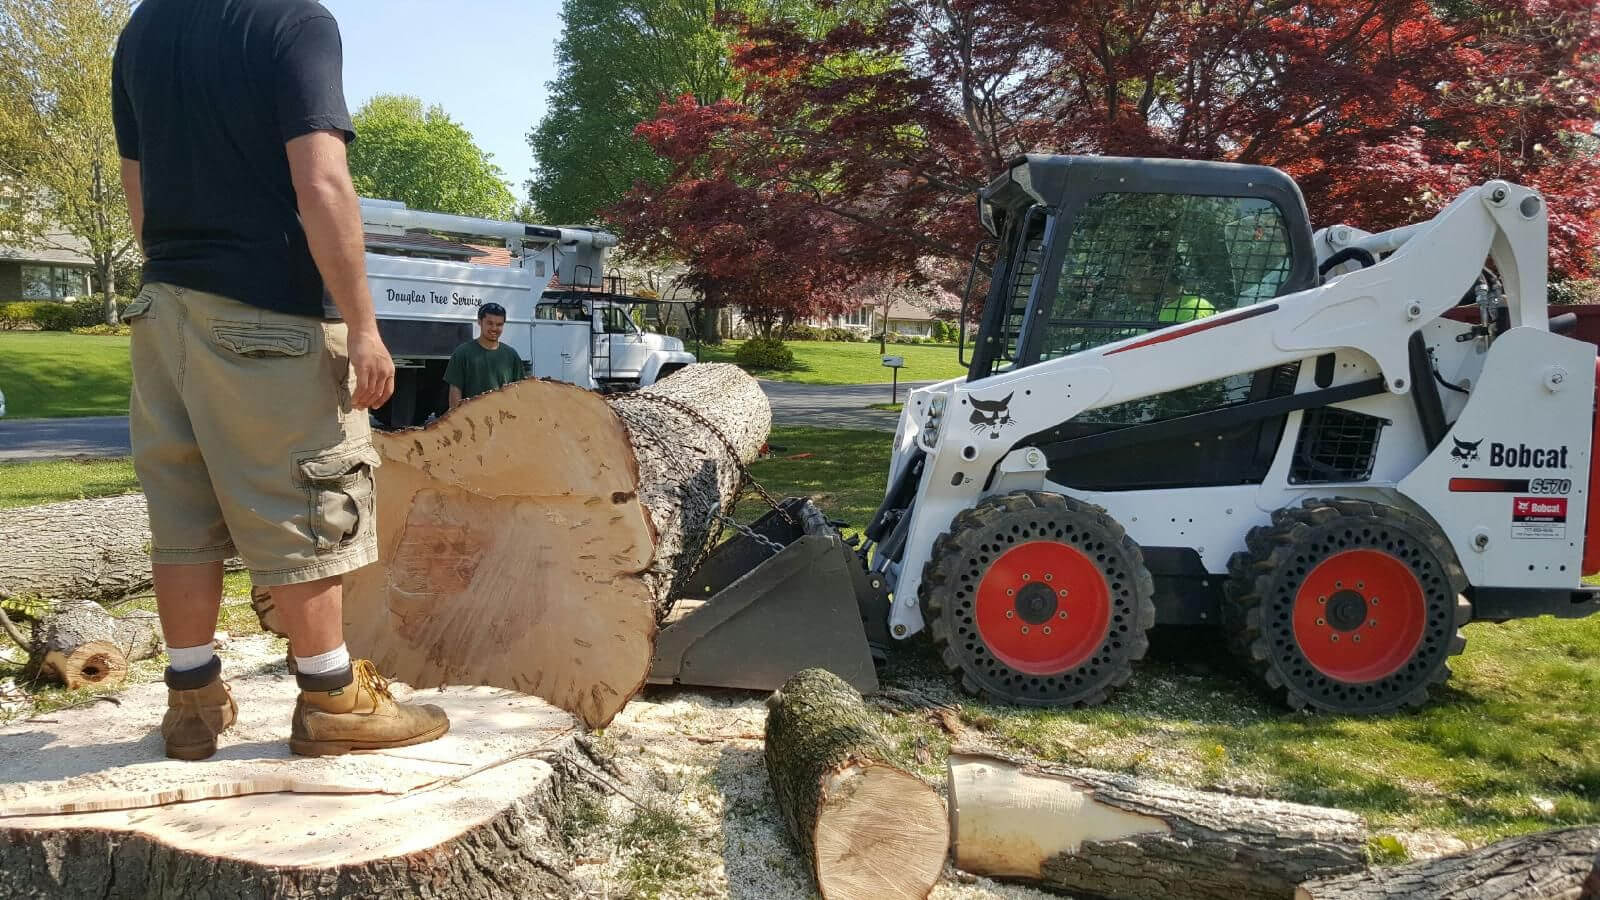 Carlsbad-San Diego County CA Tree Trimming and Stump Grinding Services-We Offer Tree Trimming Services, Tree Removal, Tree Pruning, Tree Cutting, Residential and Commercial Tree Trimming Services, Storm Damage, Emergency Tree Removal, Land Clearing, Tree Companies, Tree Care Service, Stump Grinding, and we're the Best Tree Trimming Company Near You Guaranteed!